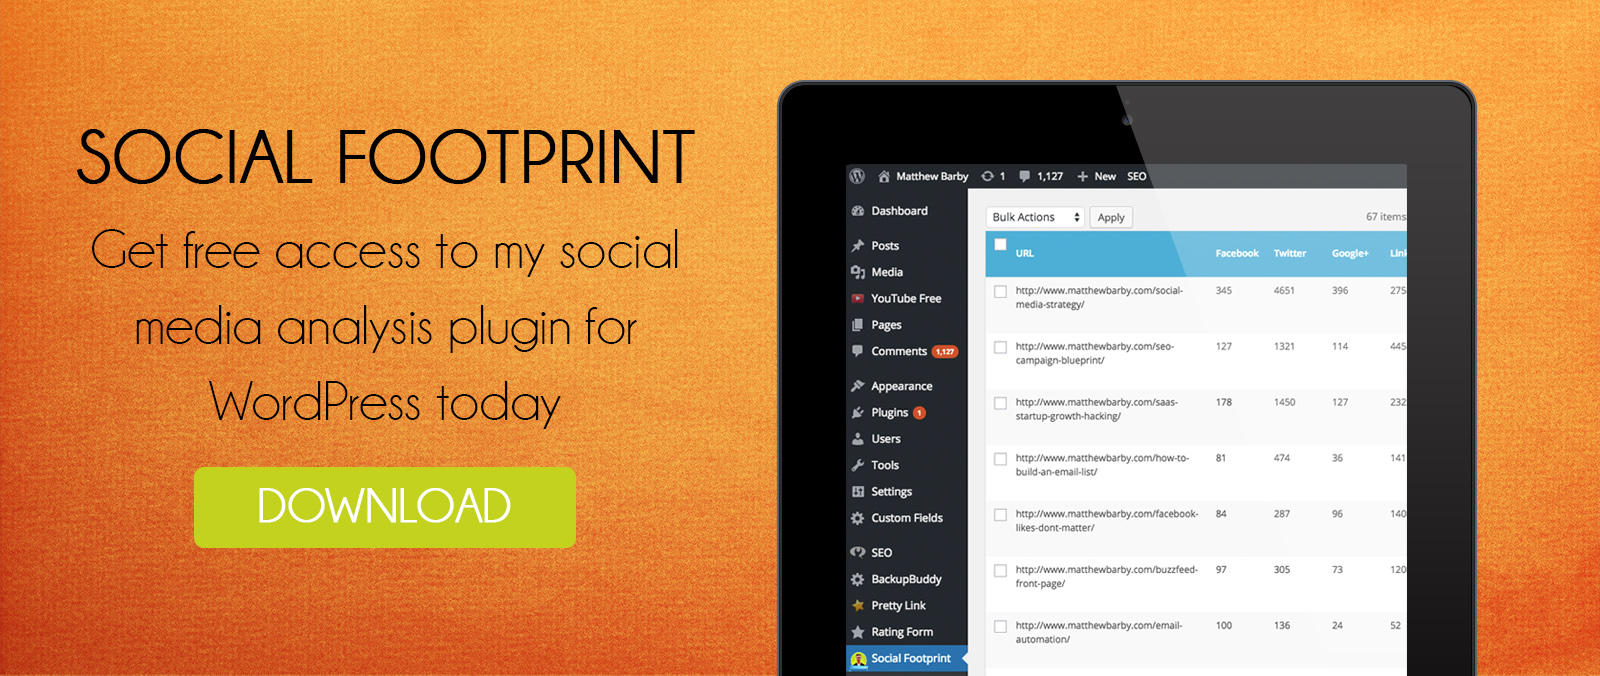 Download my free social media plugin